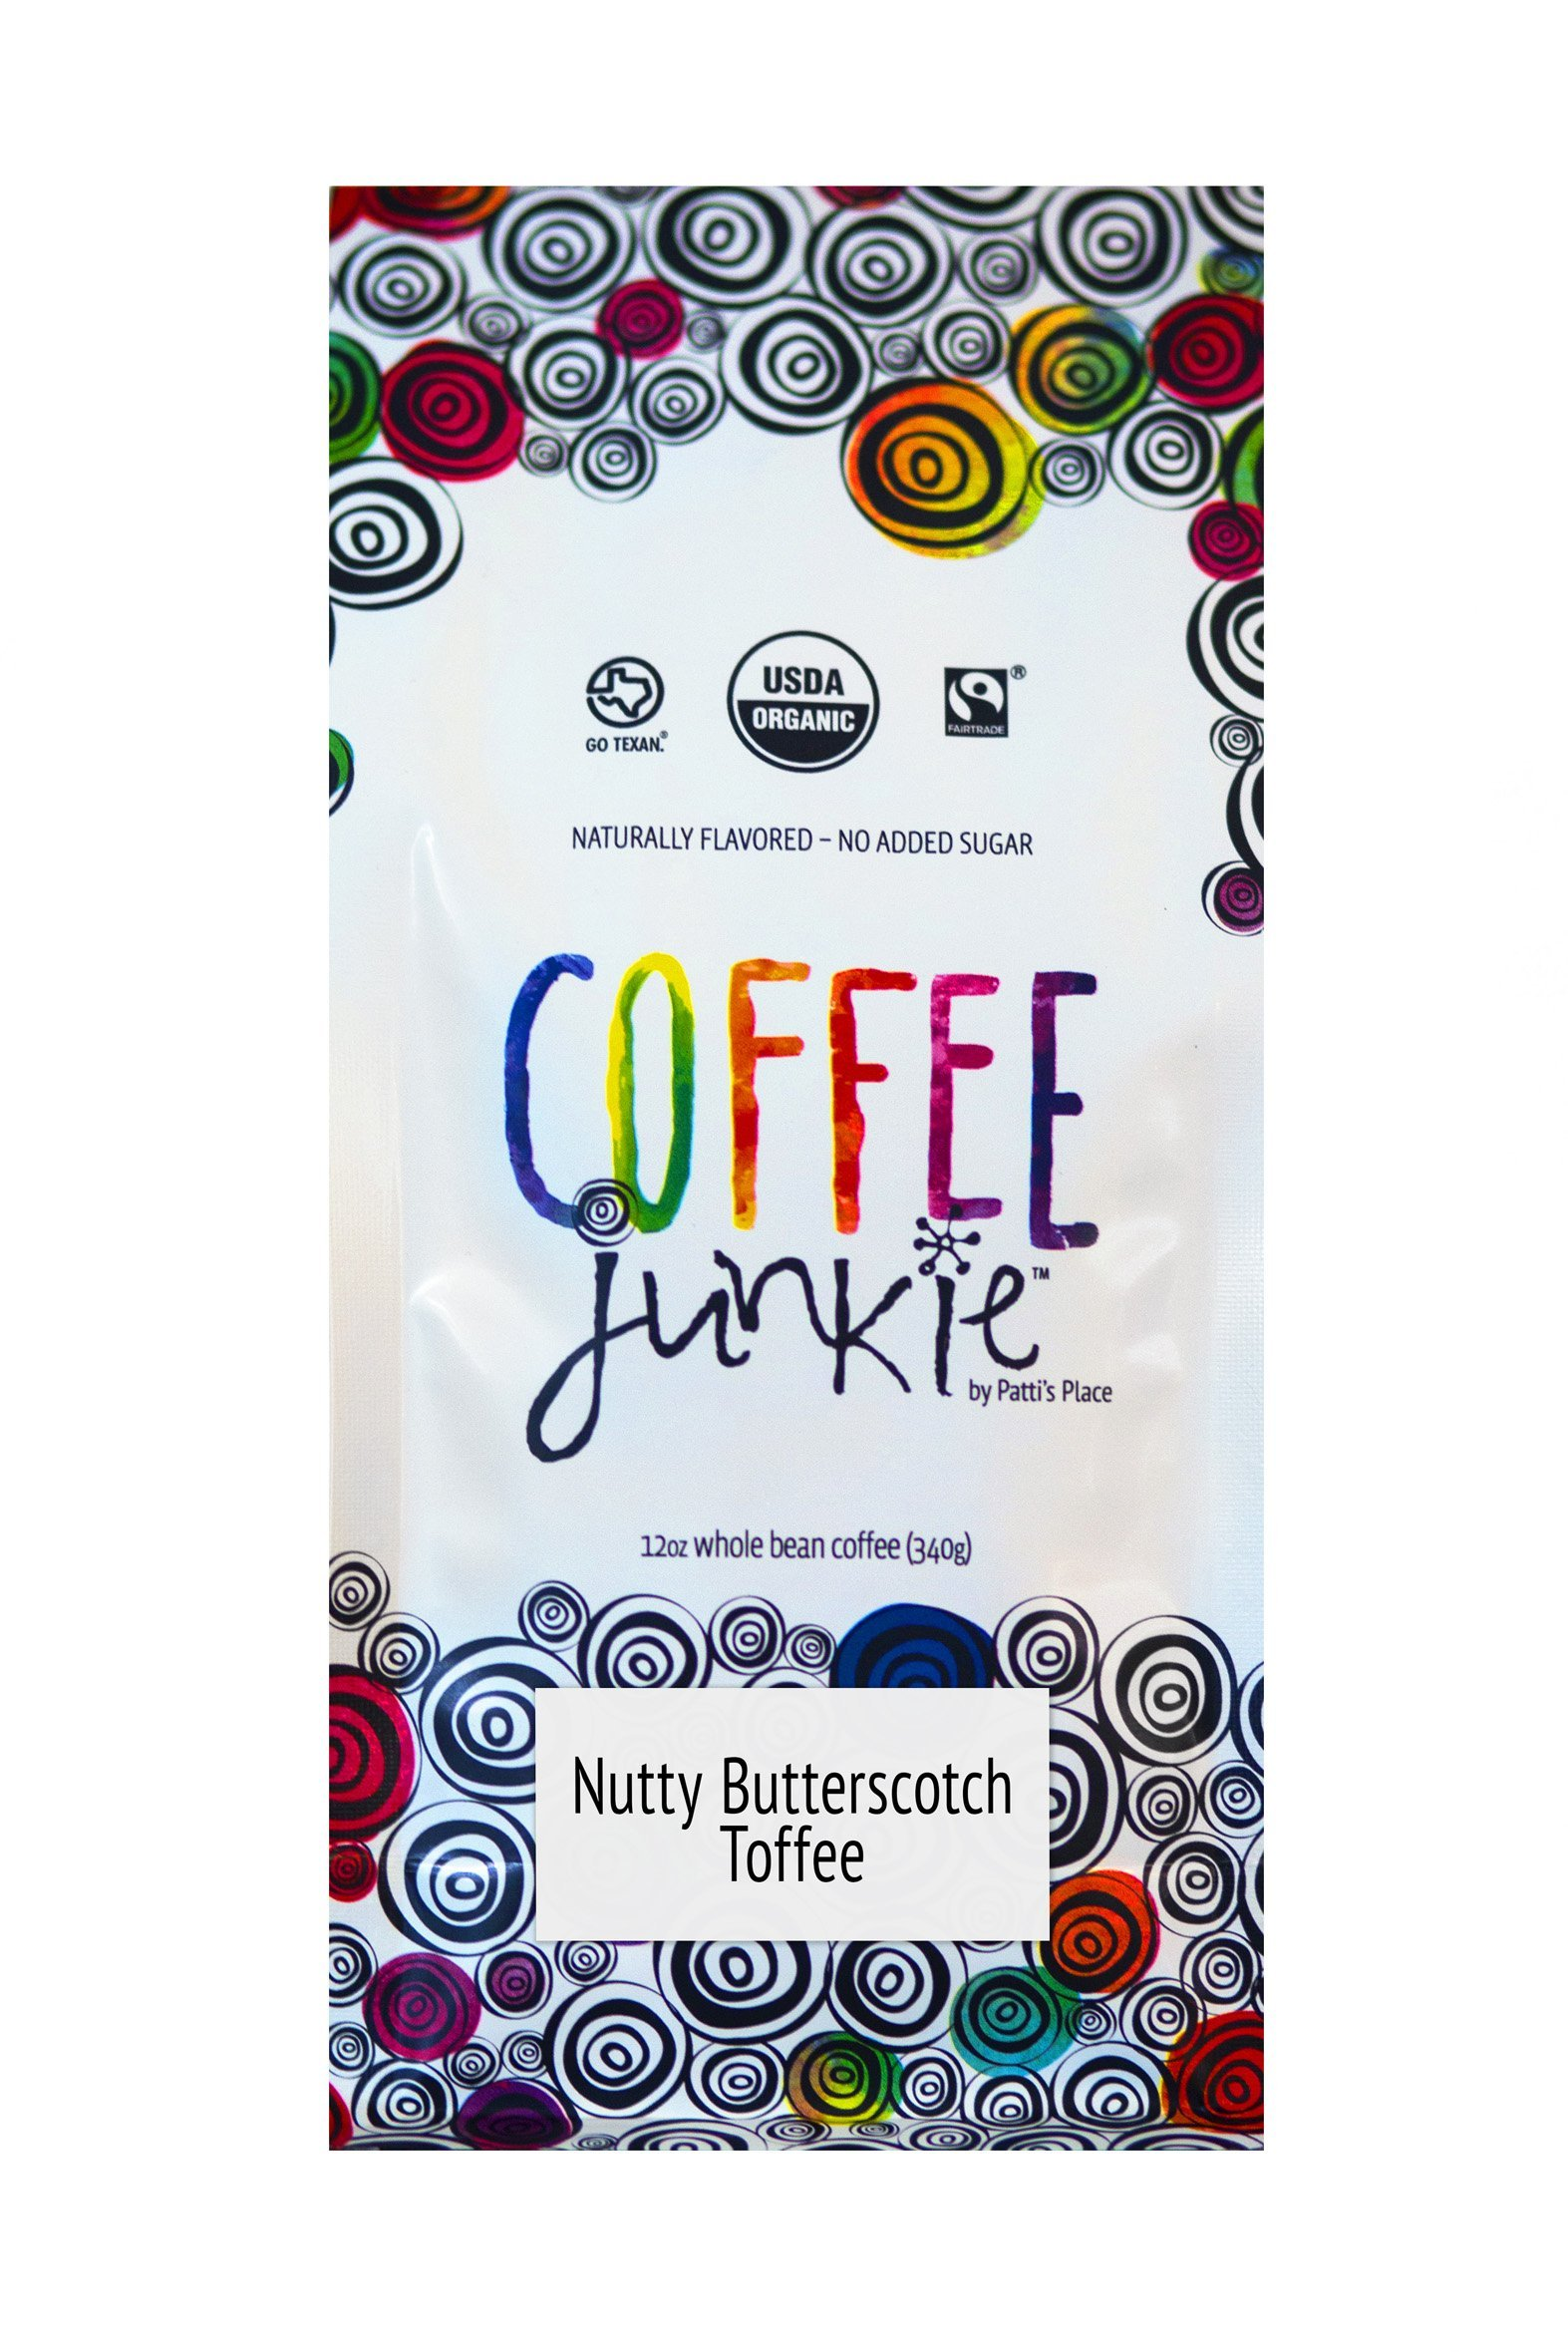 Coffee Junkie Nutty Butterscotch Toffee Naturally Flavored Coffee Beans - 12 oz